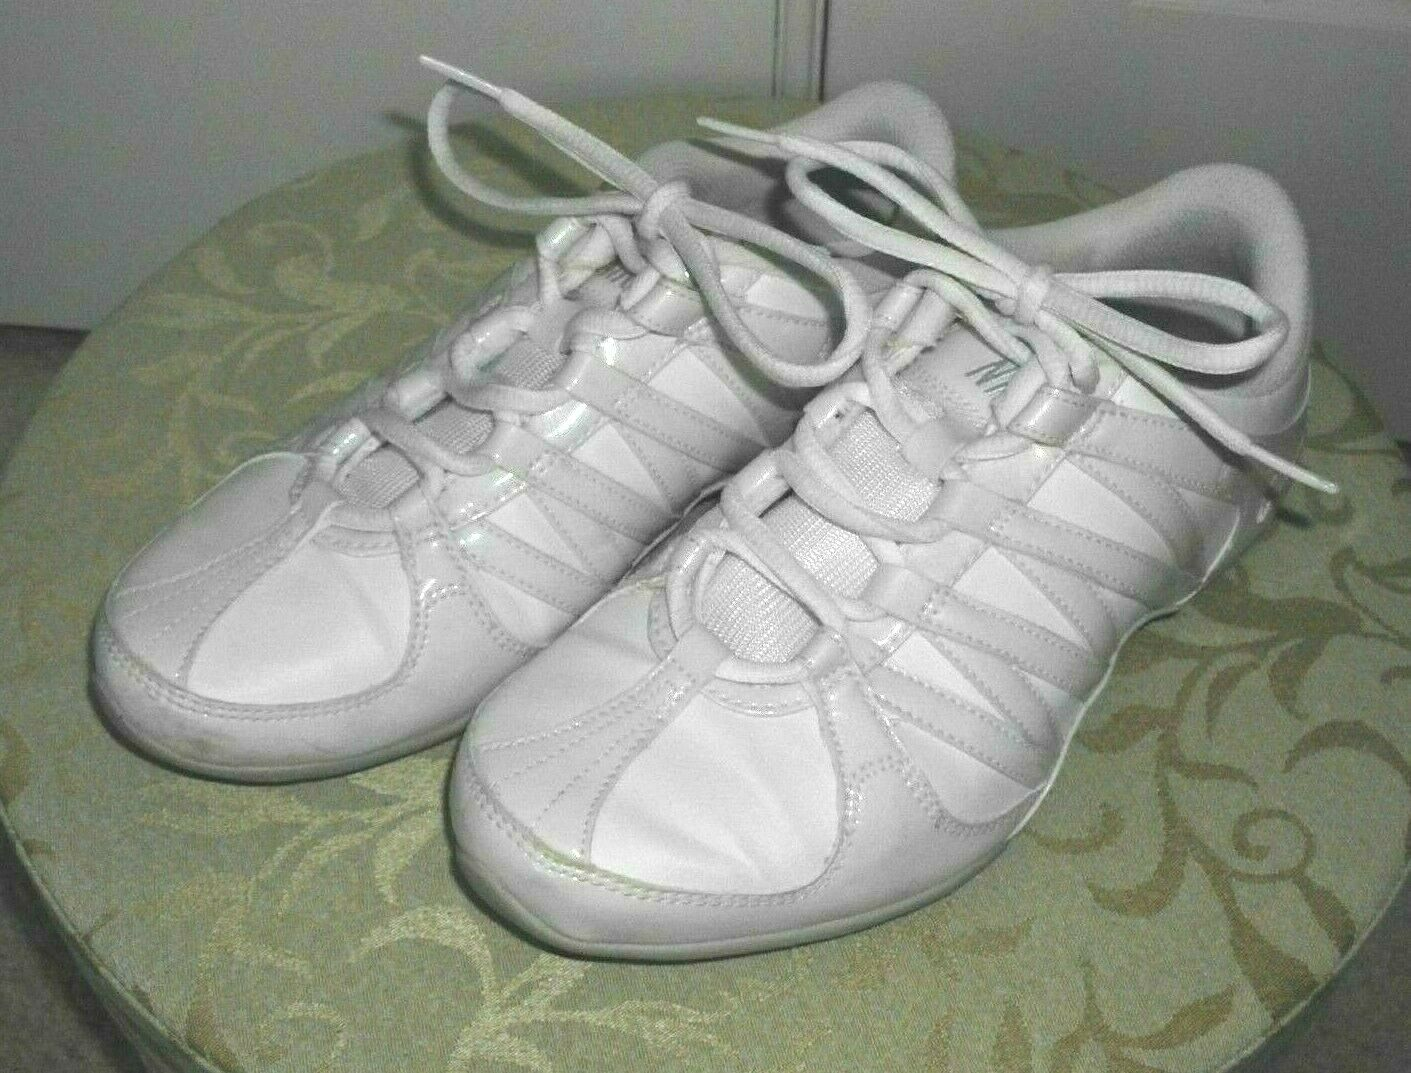 sale retailer 29b36 2b0f1 Nike Cheer Flash Shoes White Leather Size 6.5 and 50 similar items. S l1600